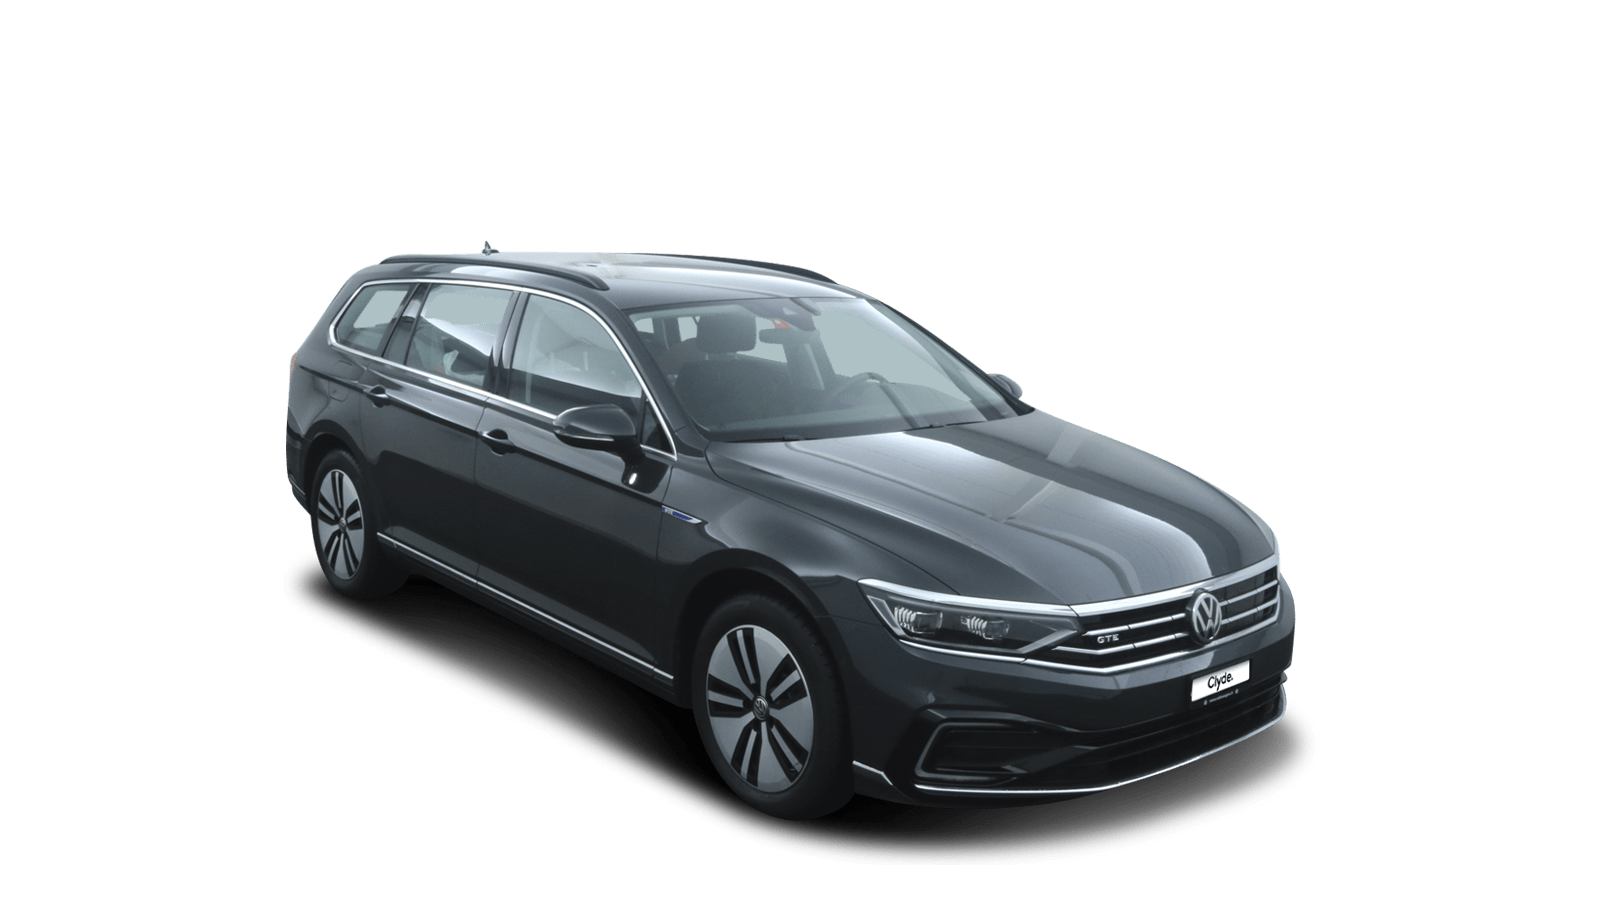 VW Passat Variant GTE Grey front - Clyde car subscription